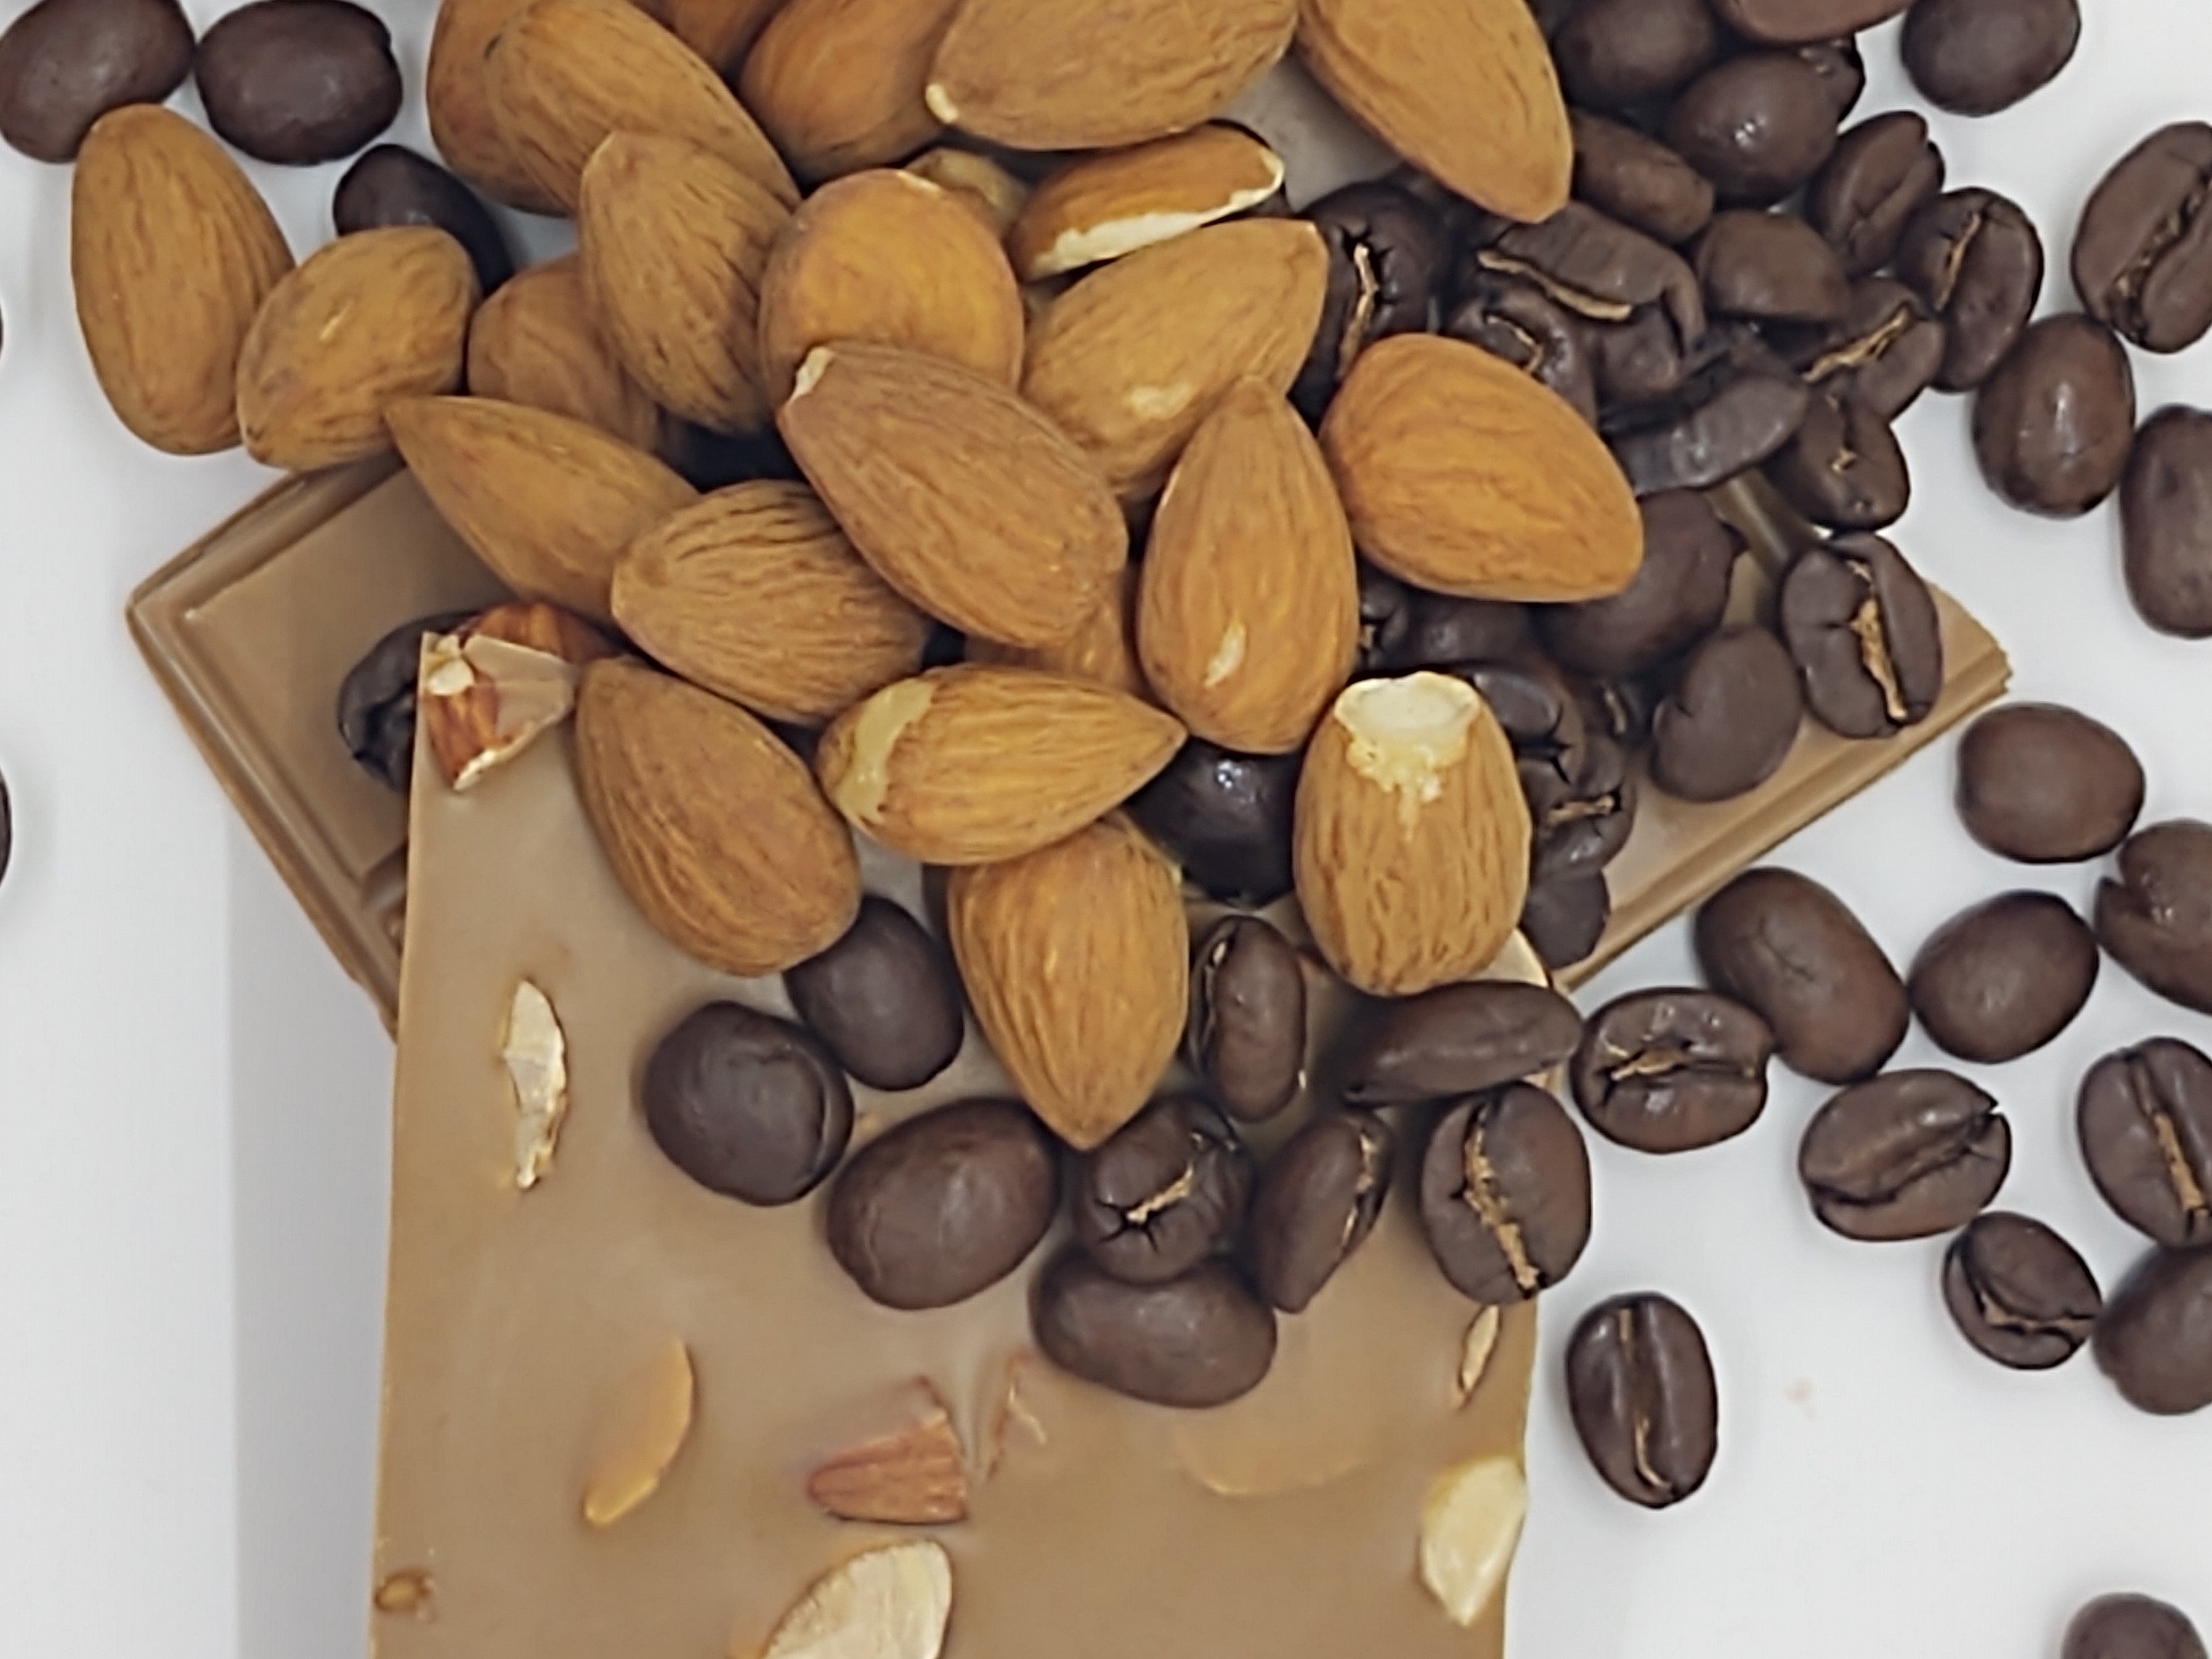 Pictured: a solid mocha flavored chocolate bar mounted by whole, roasted coffee beans and whole almonds